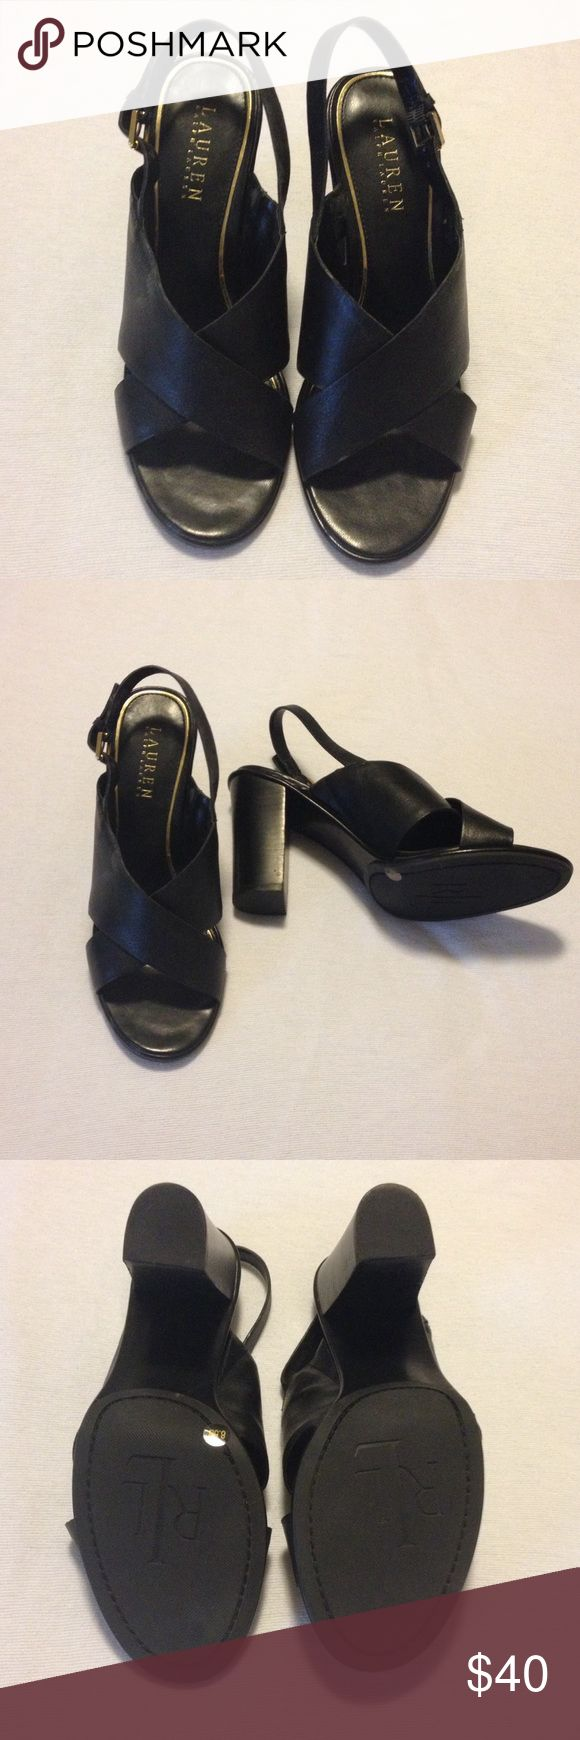 Women's slingbacks Great sling backs in excellent condition, literally worn once.  Great w/dresses, skirts or trousers.  Classic style can work in the office.  Bundle-bundle!! Ralph Lauren Shoes Heels